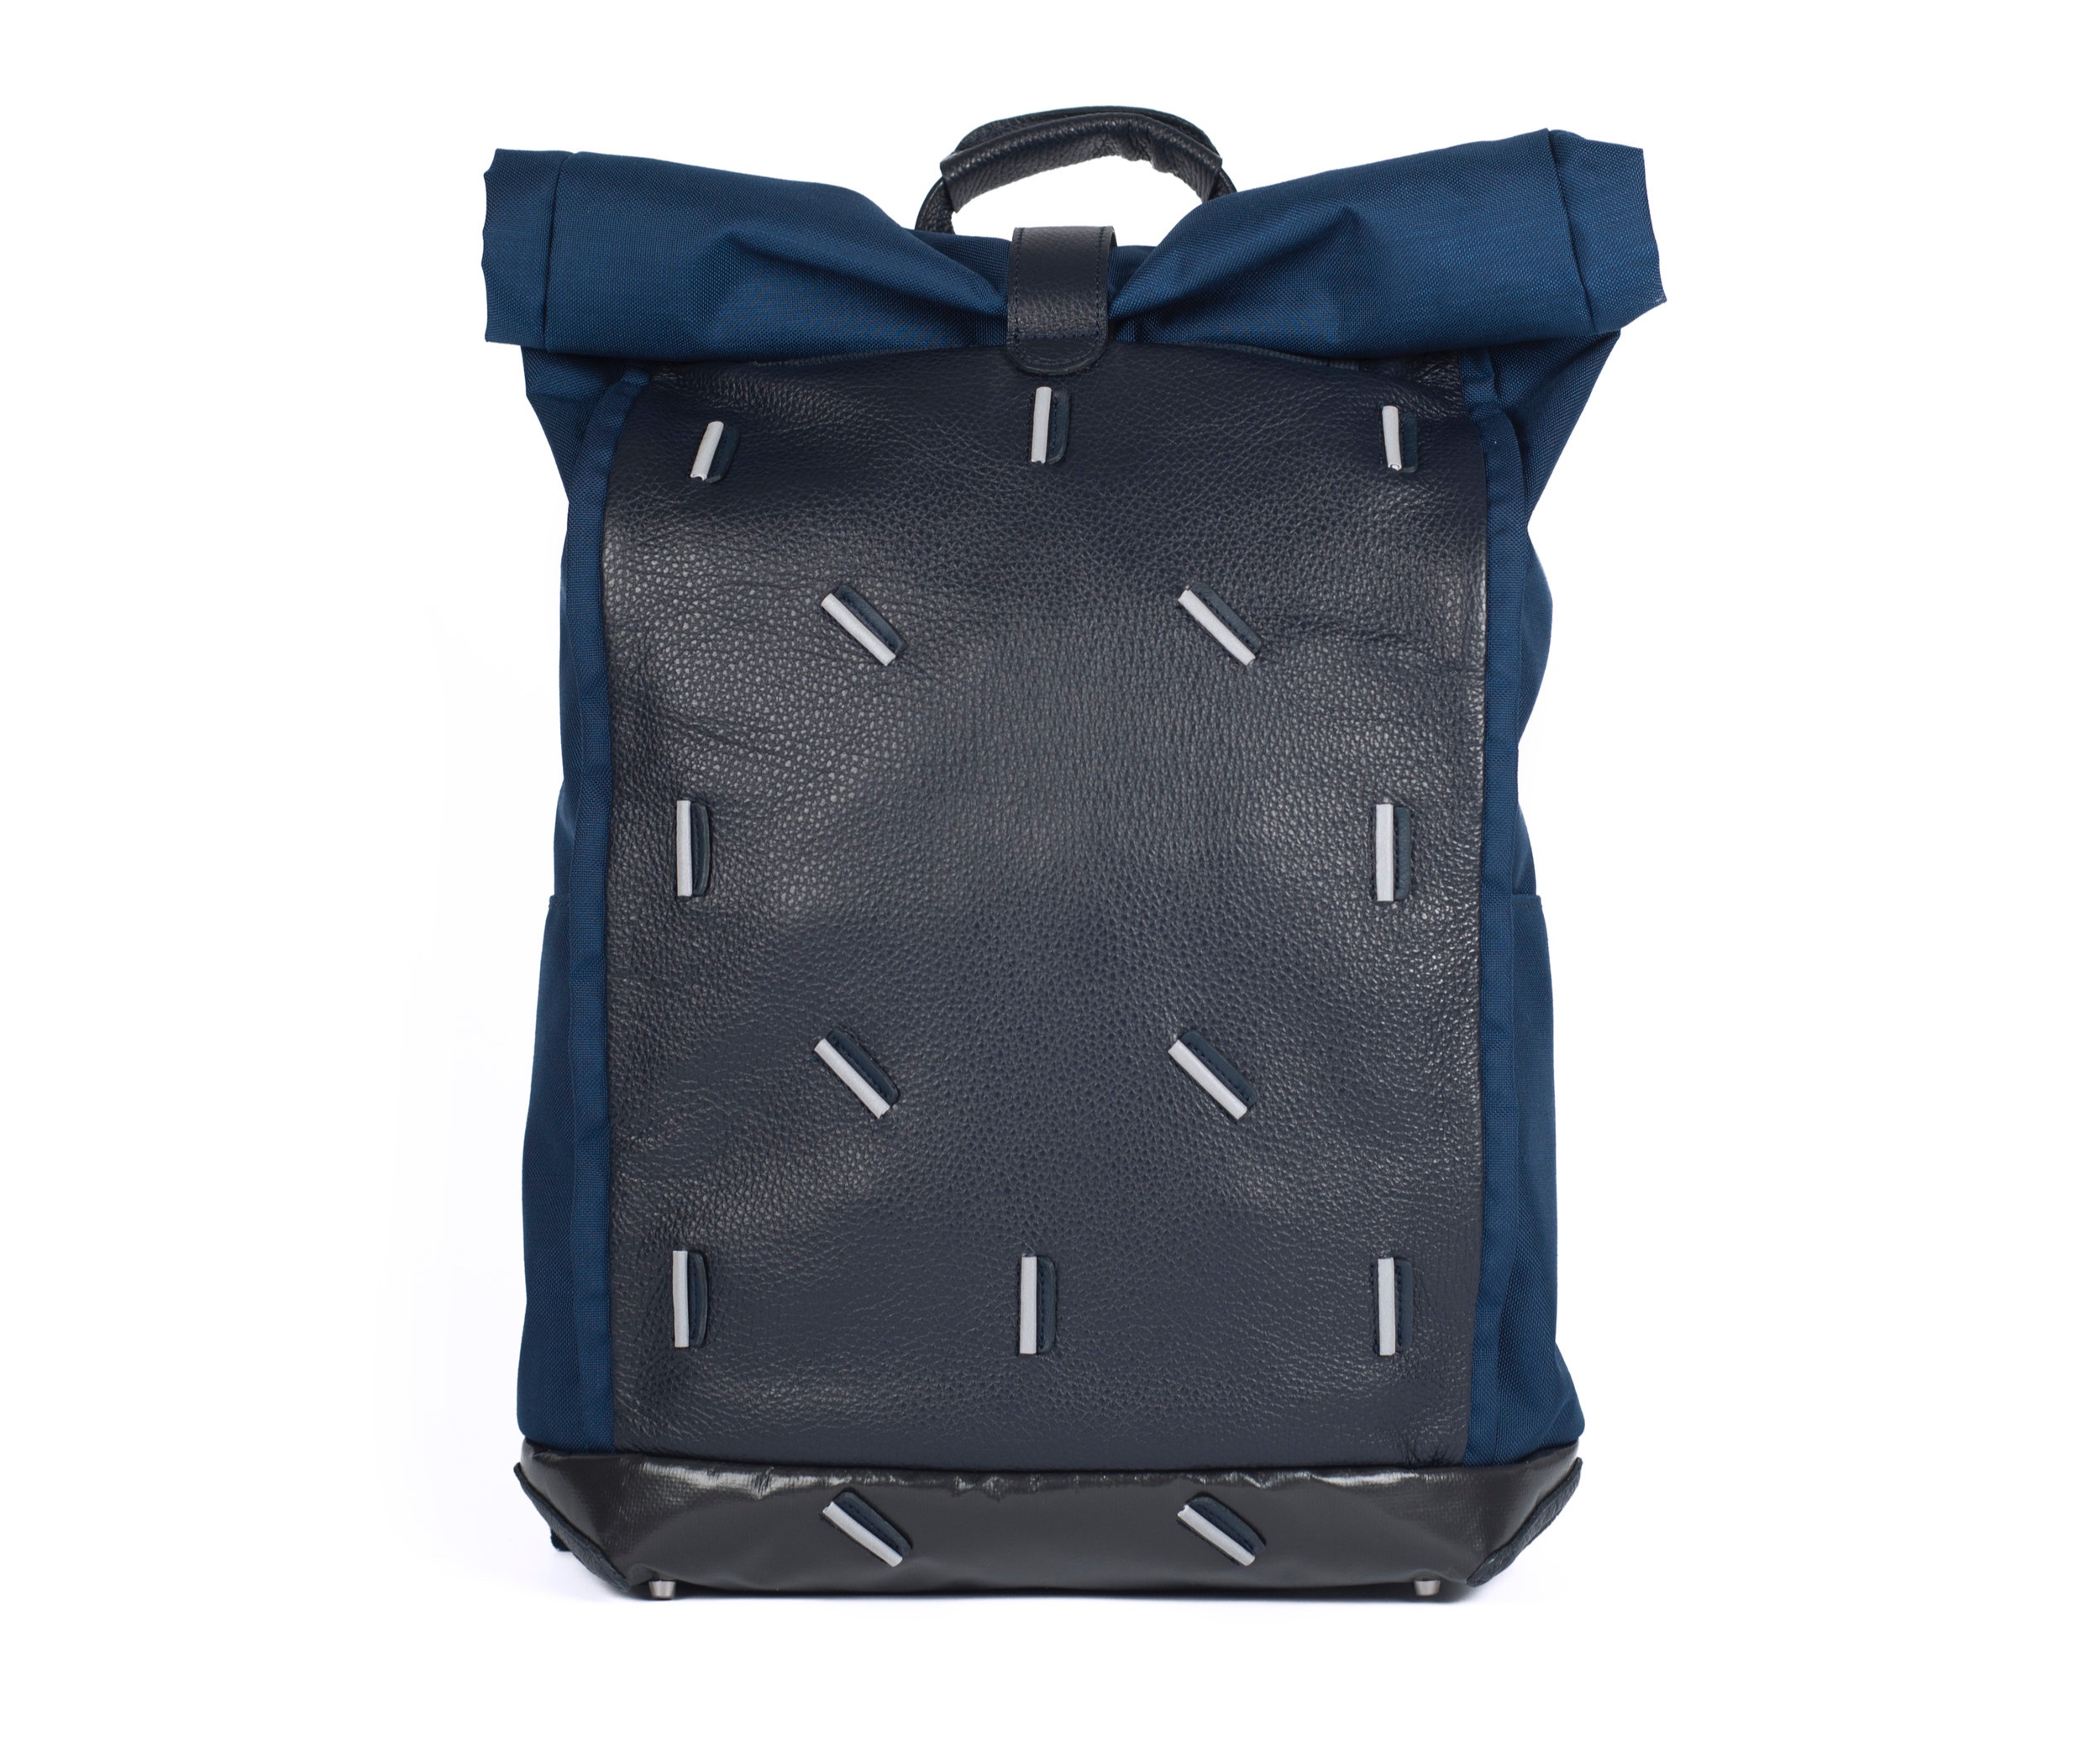 leather backpack bag with reflective details | Maxime